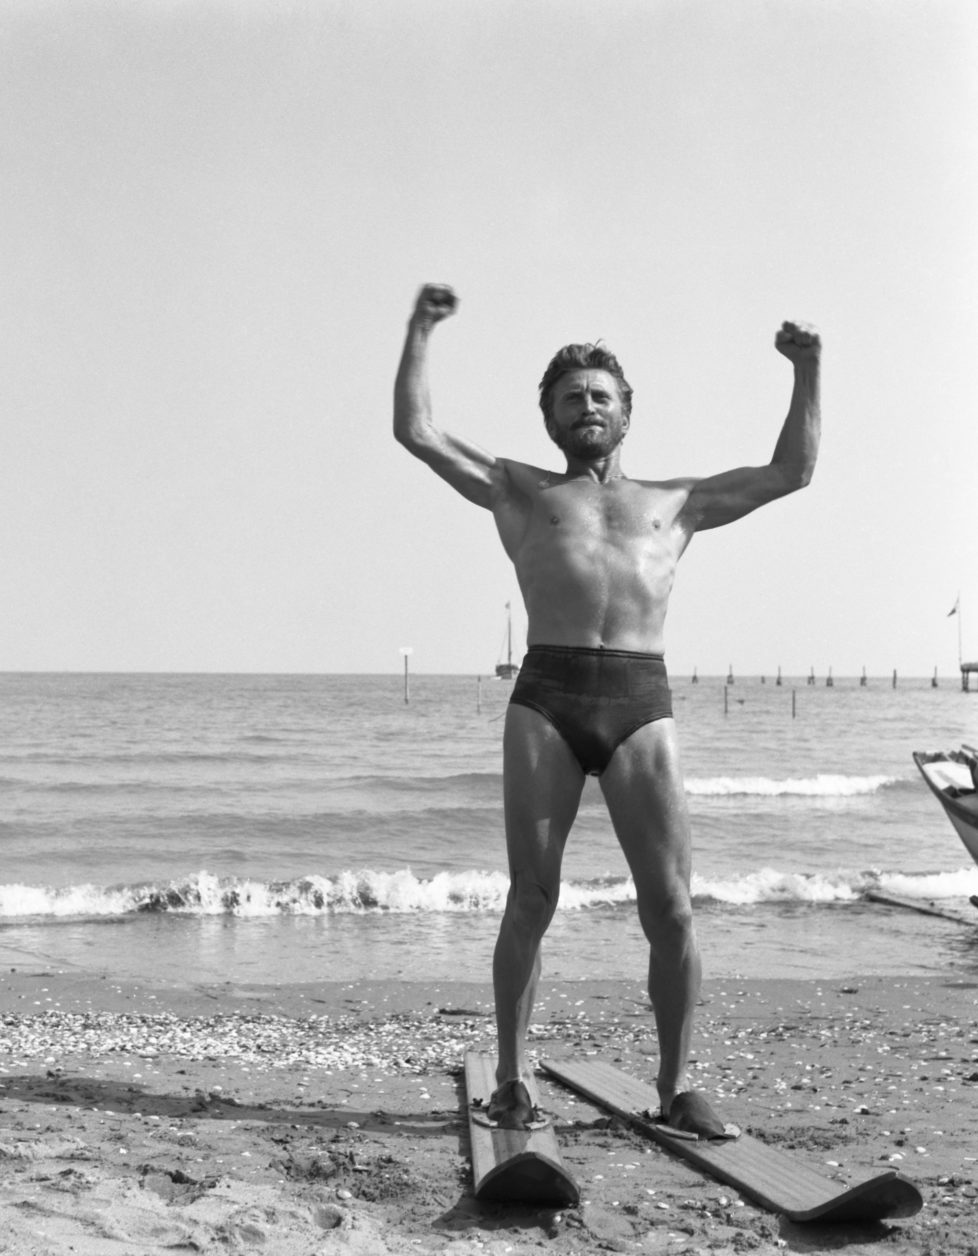 American actor Kirk Douglas, wearing a swimming suit and a necklace chainlet, portrayed while wearing a pair of waterski, on the Lido beach, Venice 1953. (Photo by Archivio Cameraphoto Epoche/Getty Images)